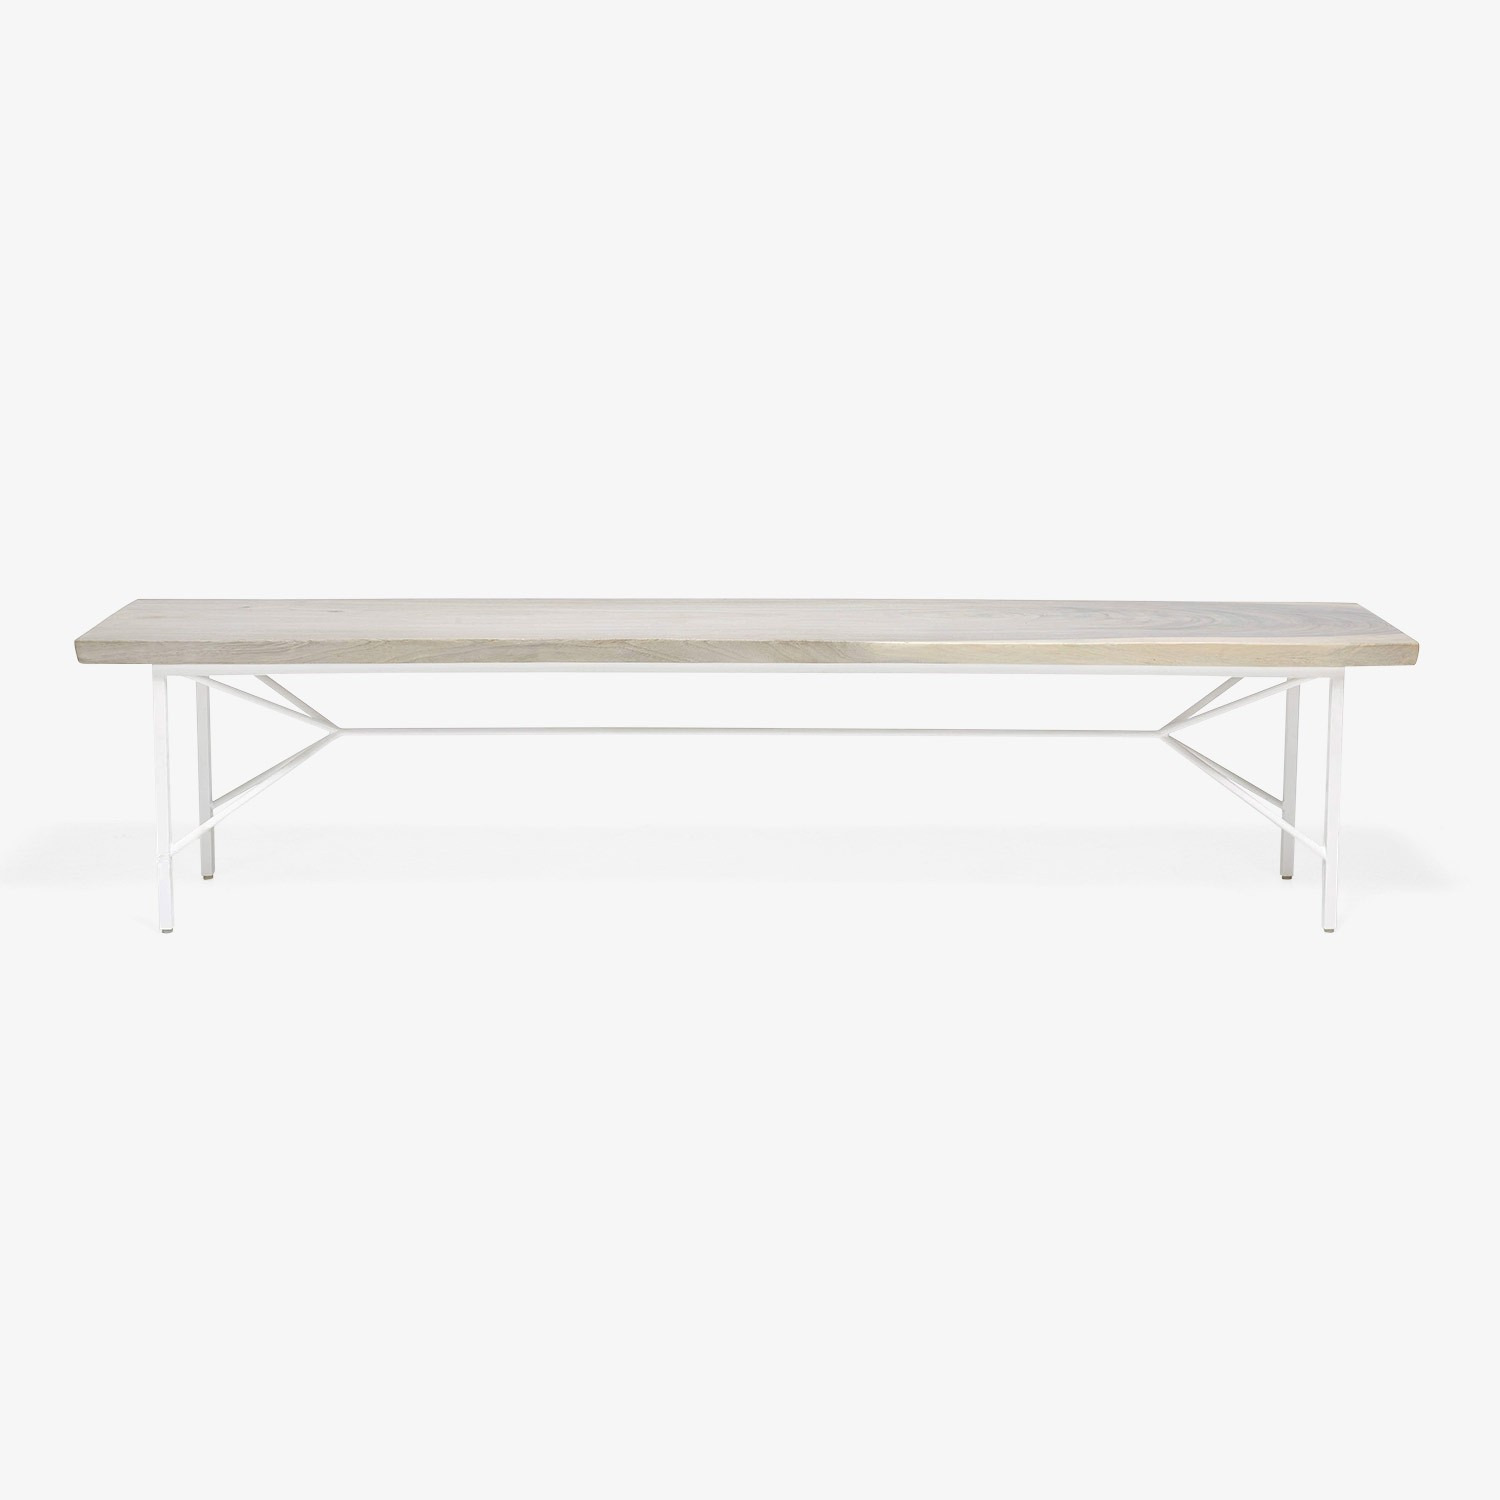 Taylor Made Reclaimed Wood Bench White - image-1